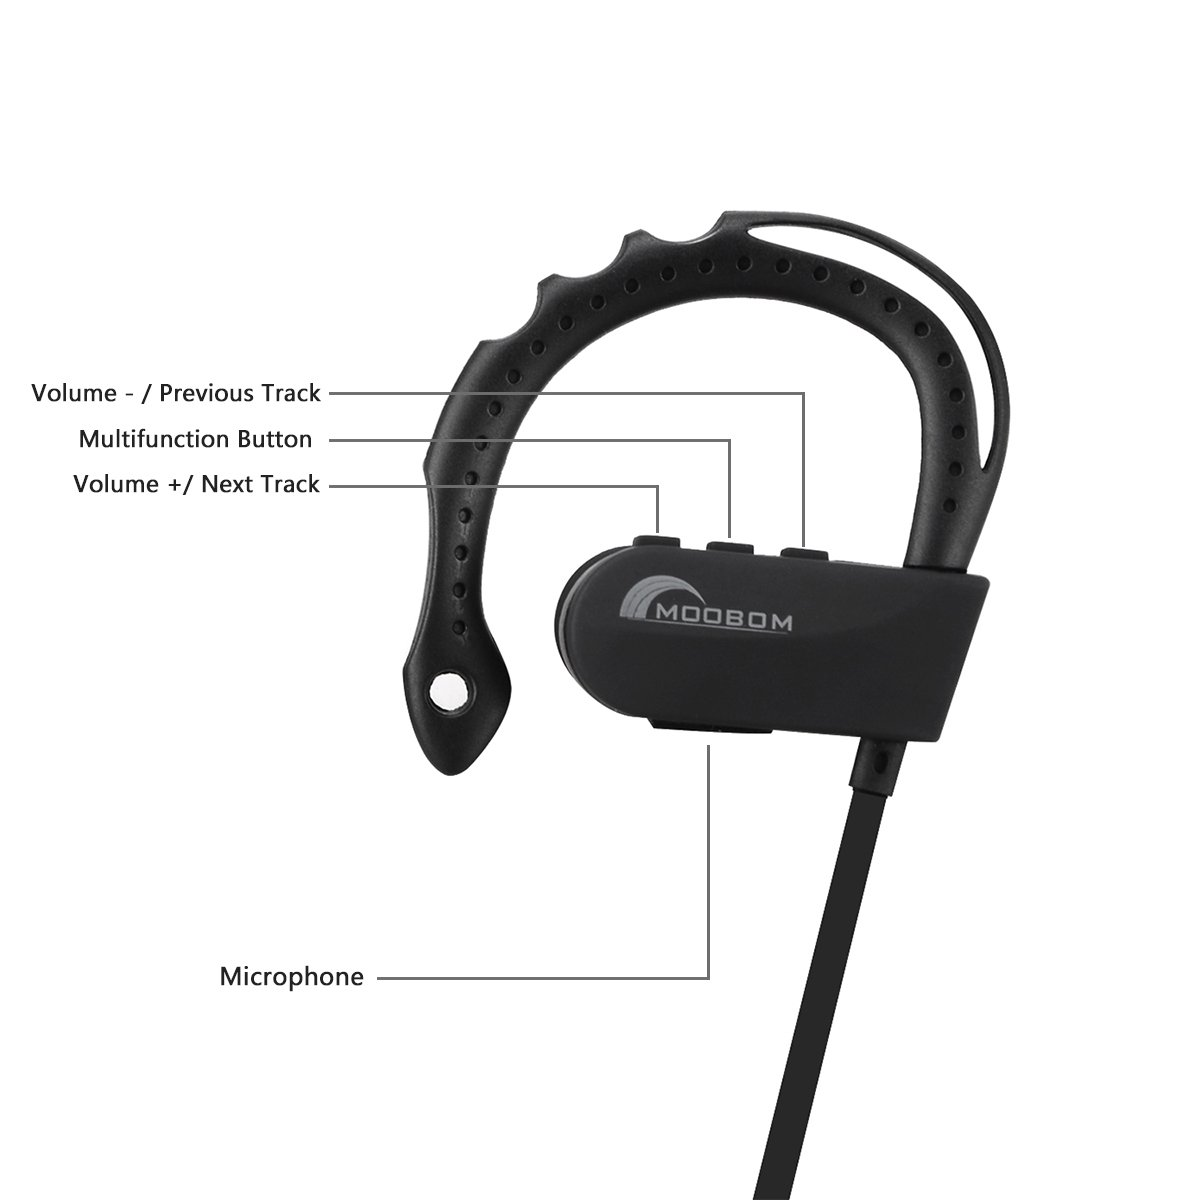 Bluetooth Headphones, Moobom V4.1 Sweatproof Wireless Earphones with APT-X, Secure Ear Hooks, Noise Cancelling with Mic